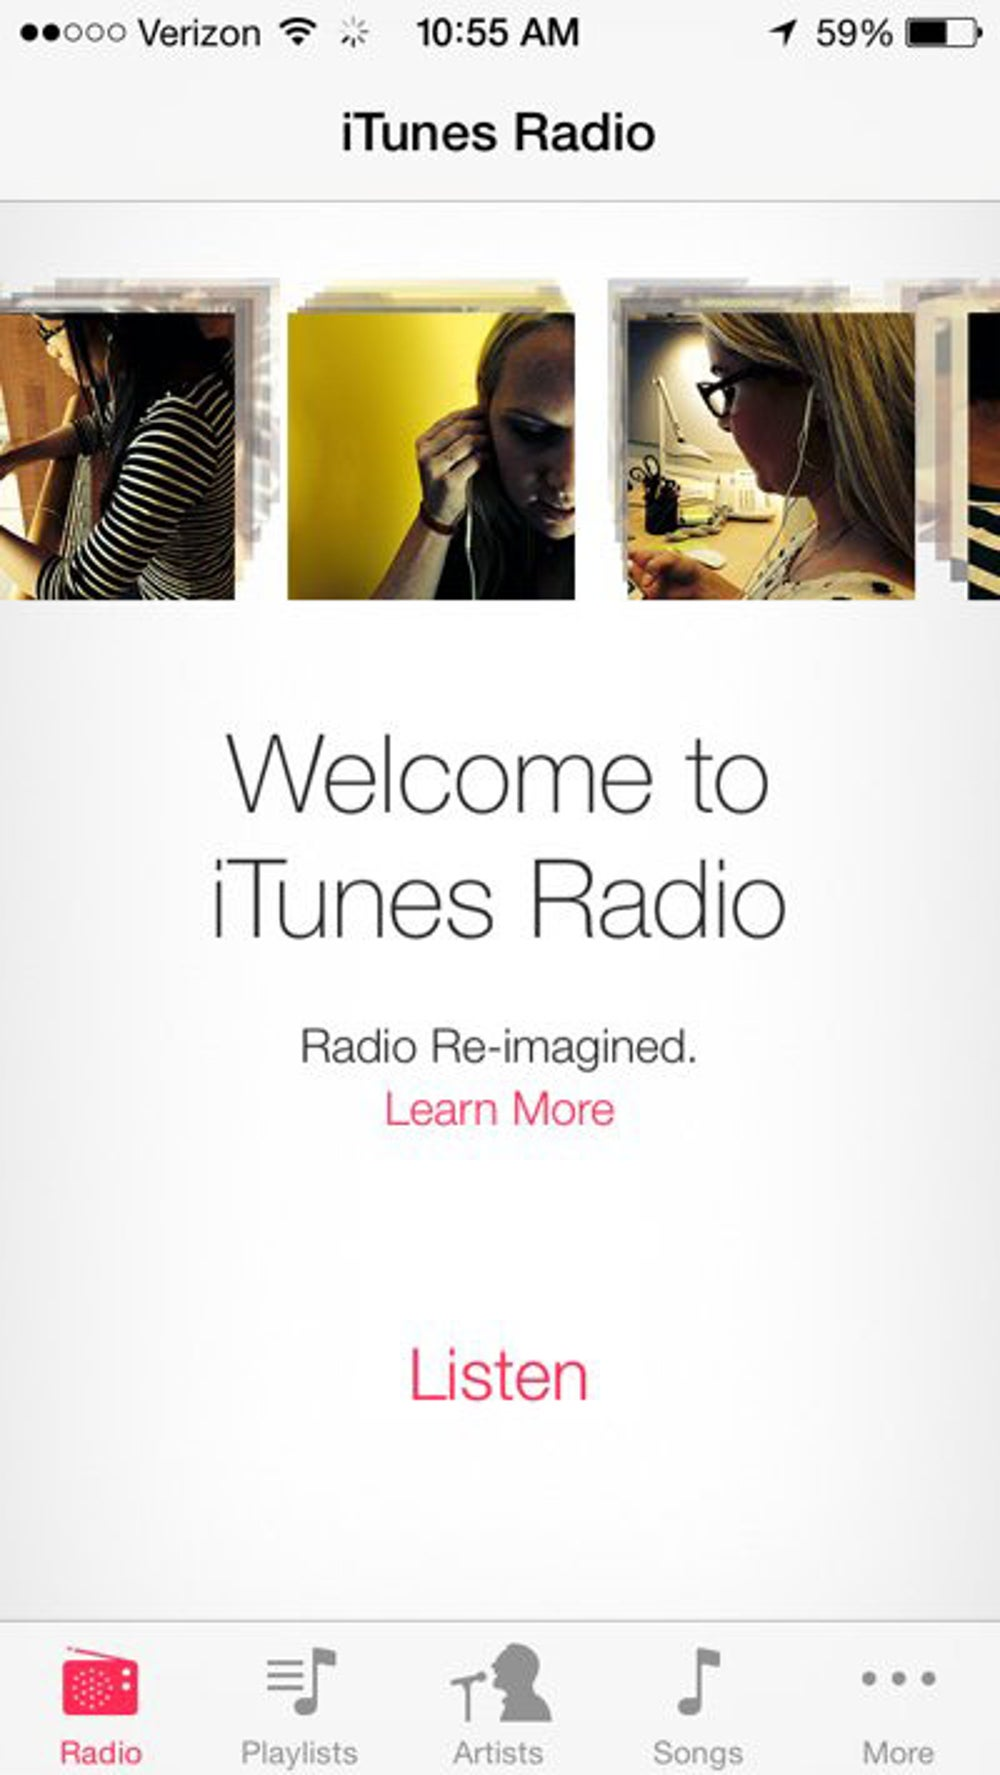 The Music app comes with Apple's new Pandora-like radio service, iTunes Radio.